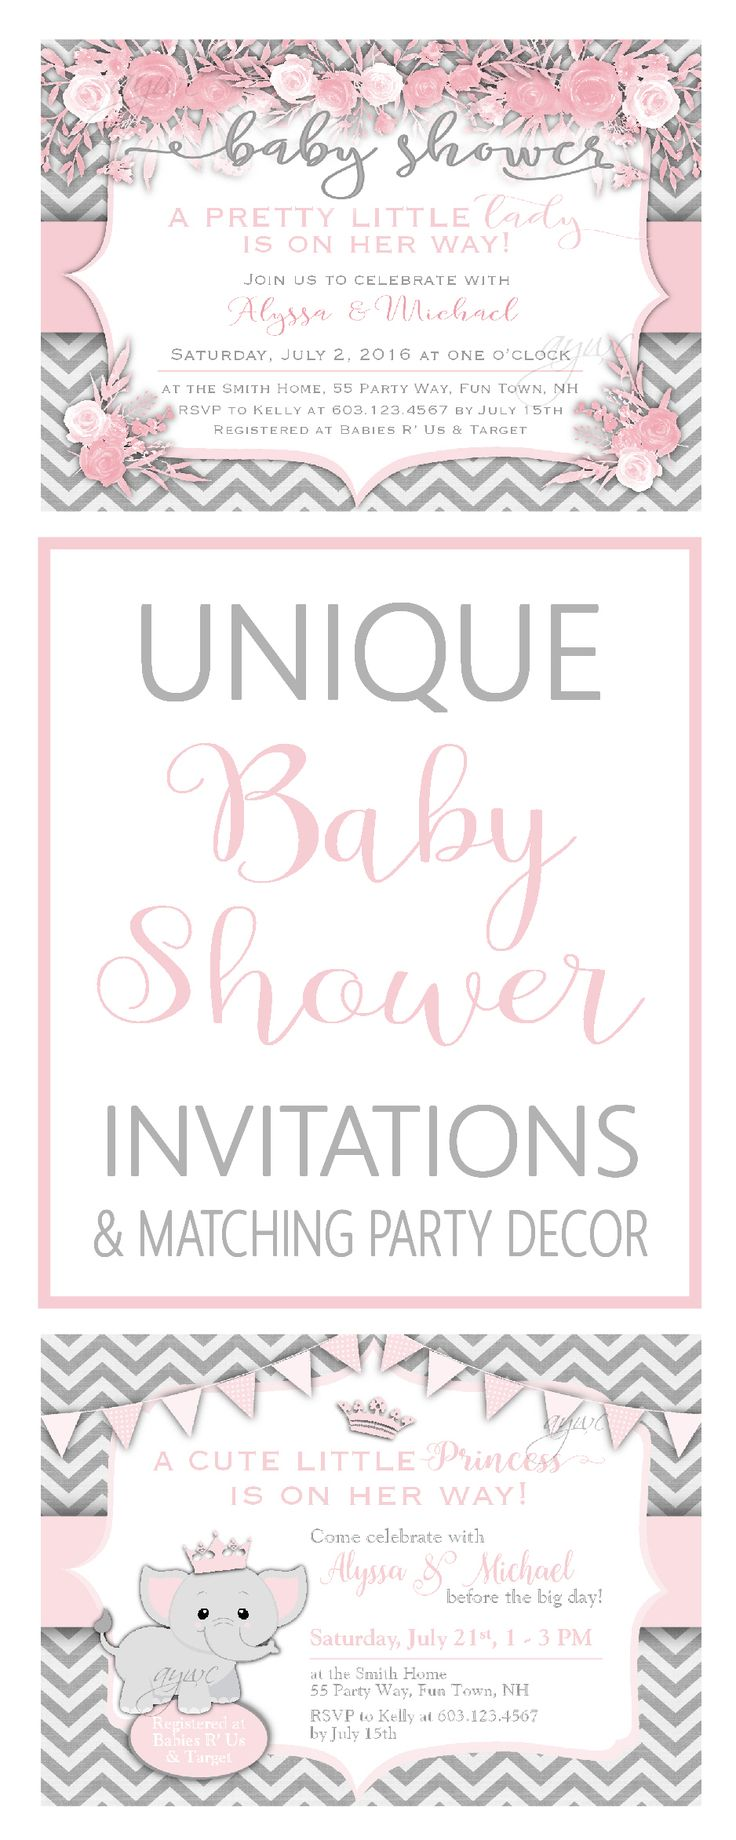 258 best Baby Shower Invitation Ideas images on Pinterest ...